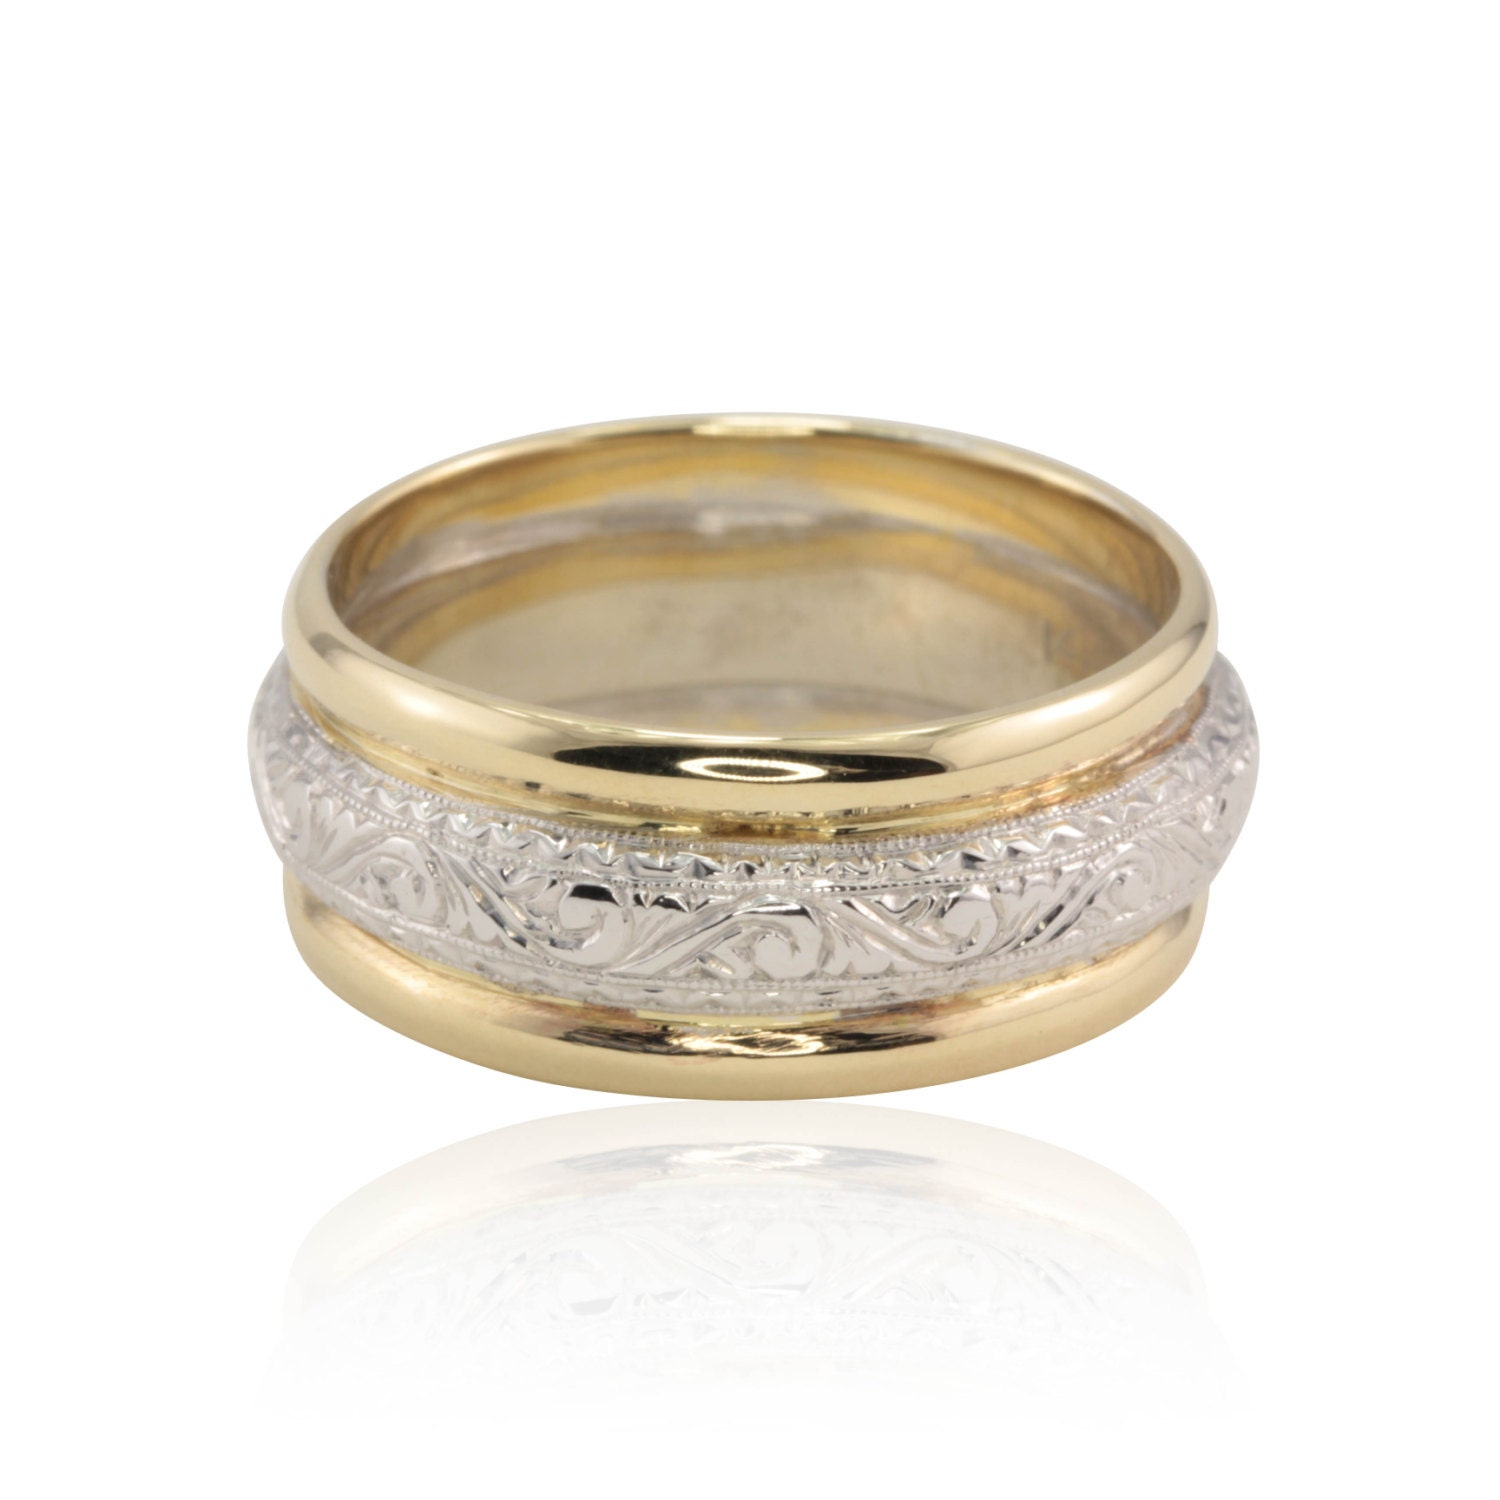 Man S Hand Bands: Hand Engraved Man's Wedding Band With Yellow Gold Edges